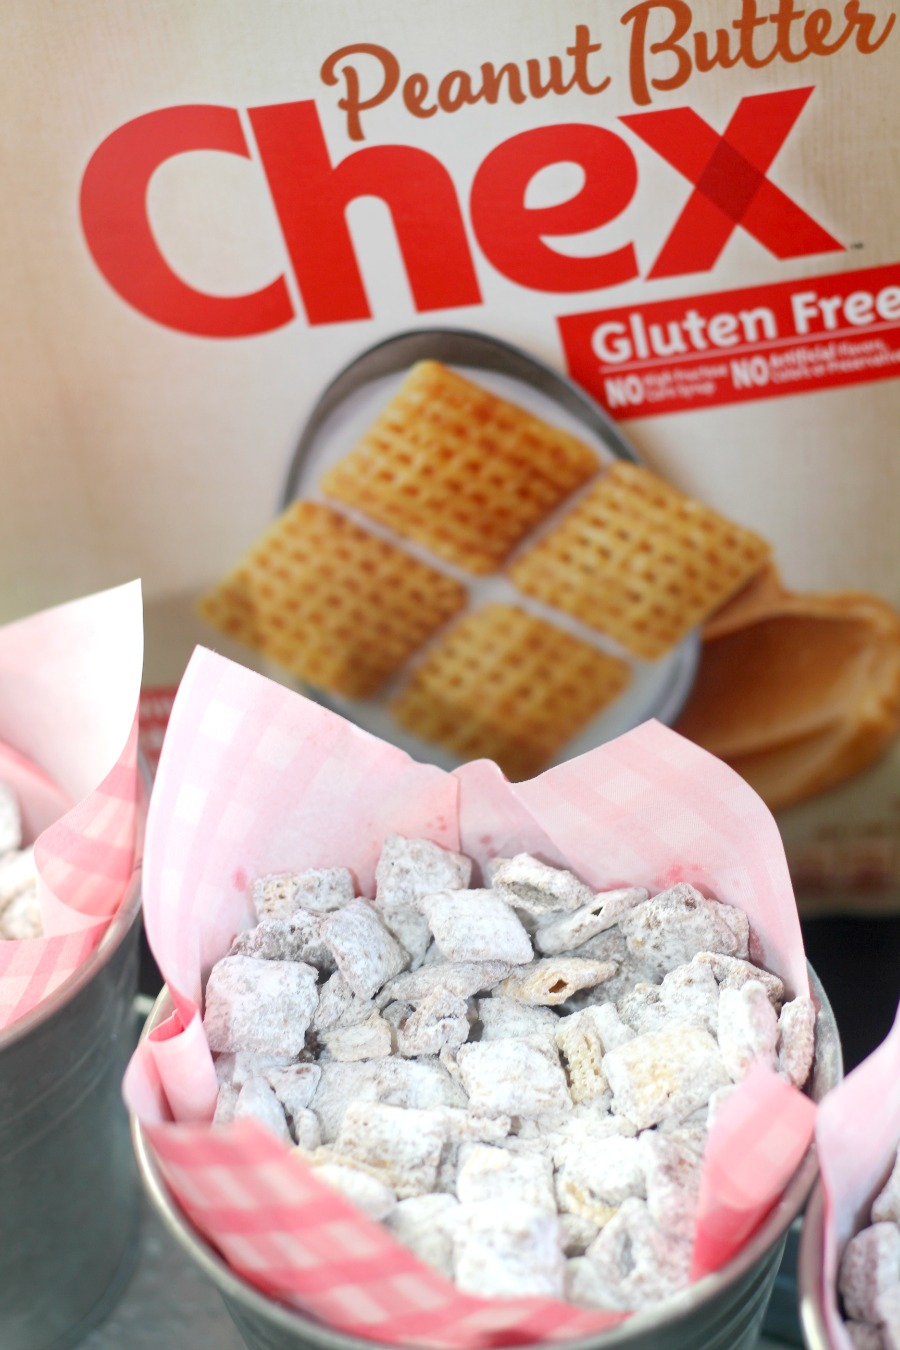 Peanut Butter Chex Double Peanut Butter Muddy Buddies Recipe